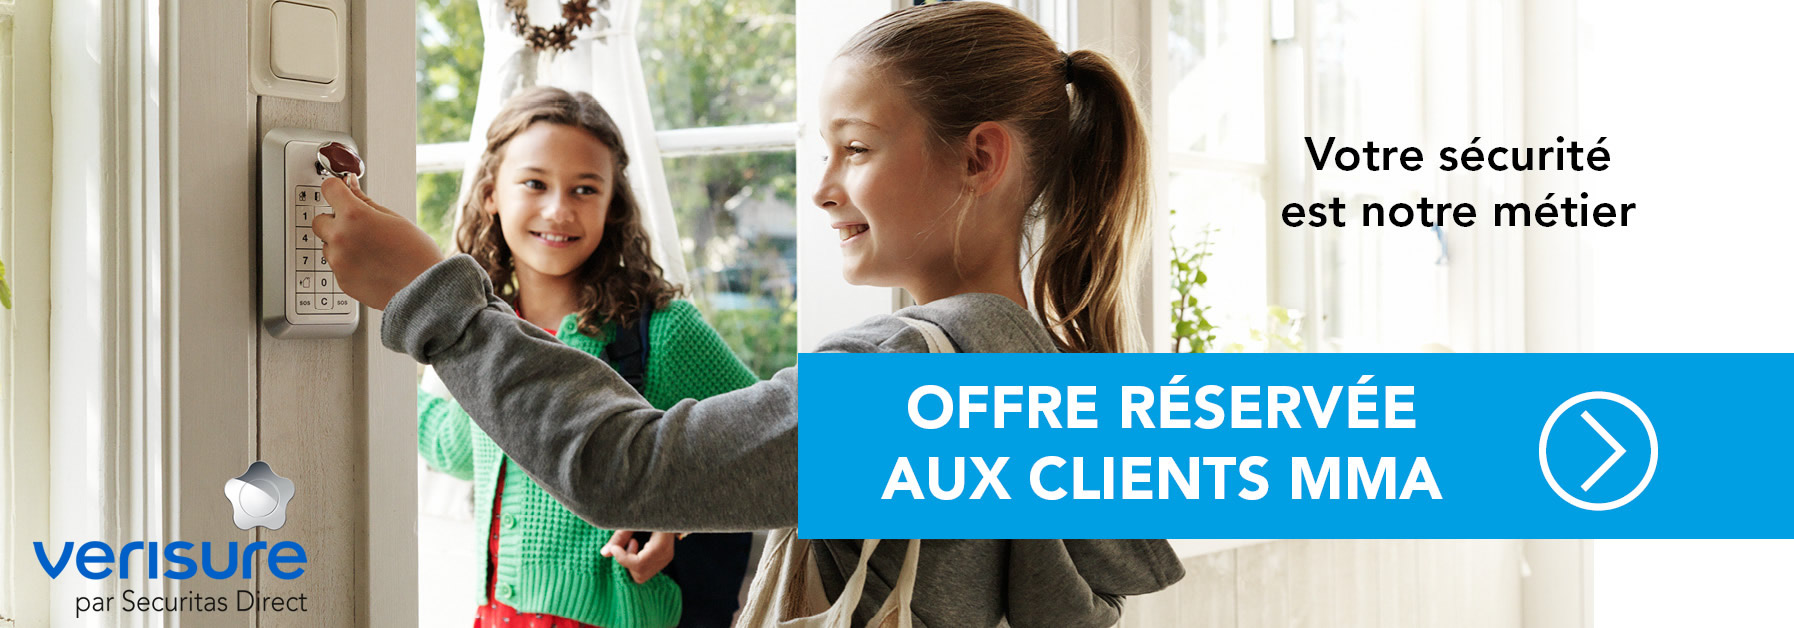 offre-reserve-clients-mma-3.jpg